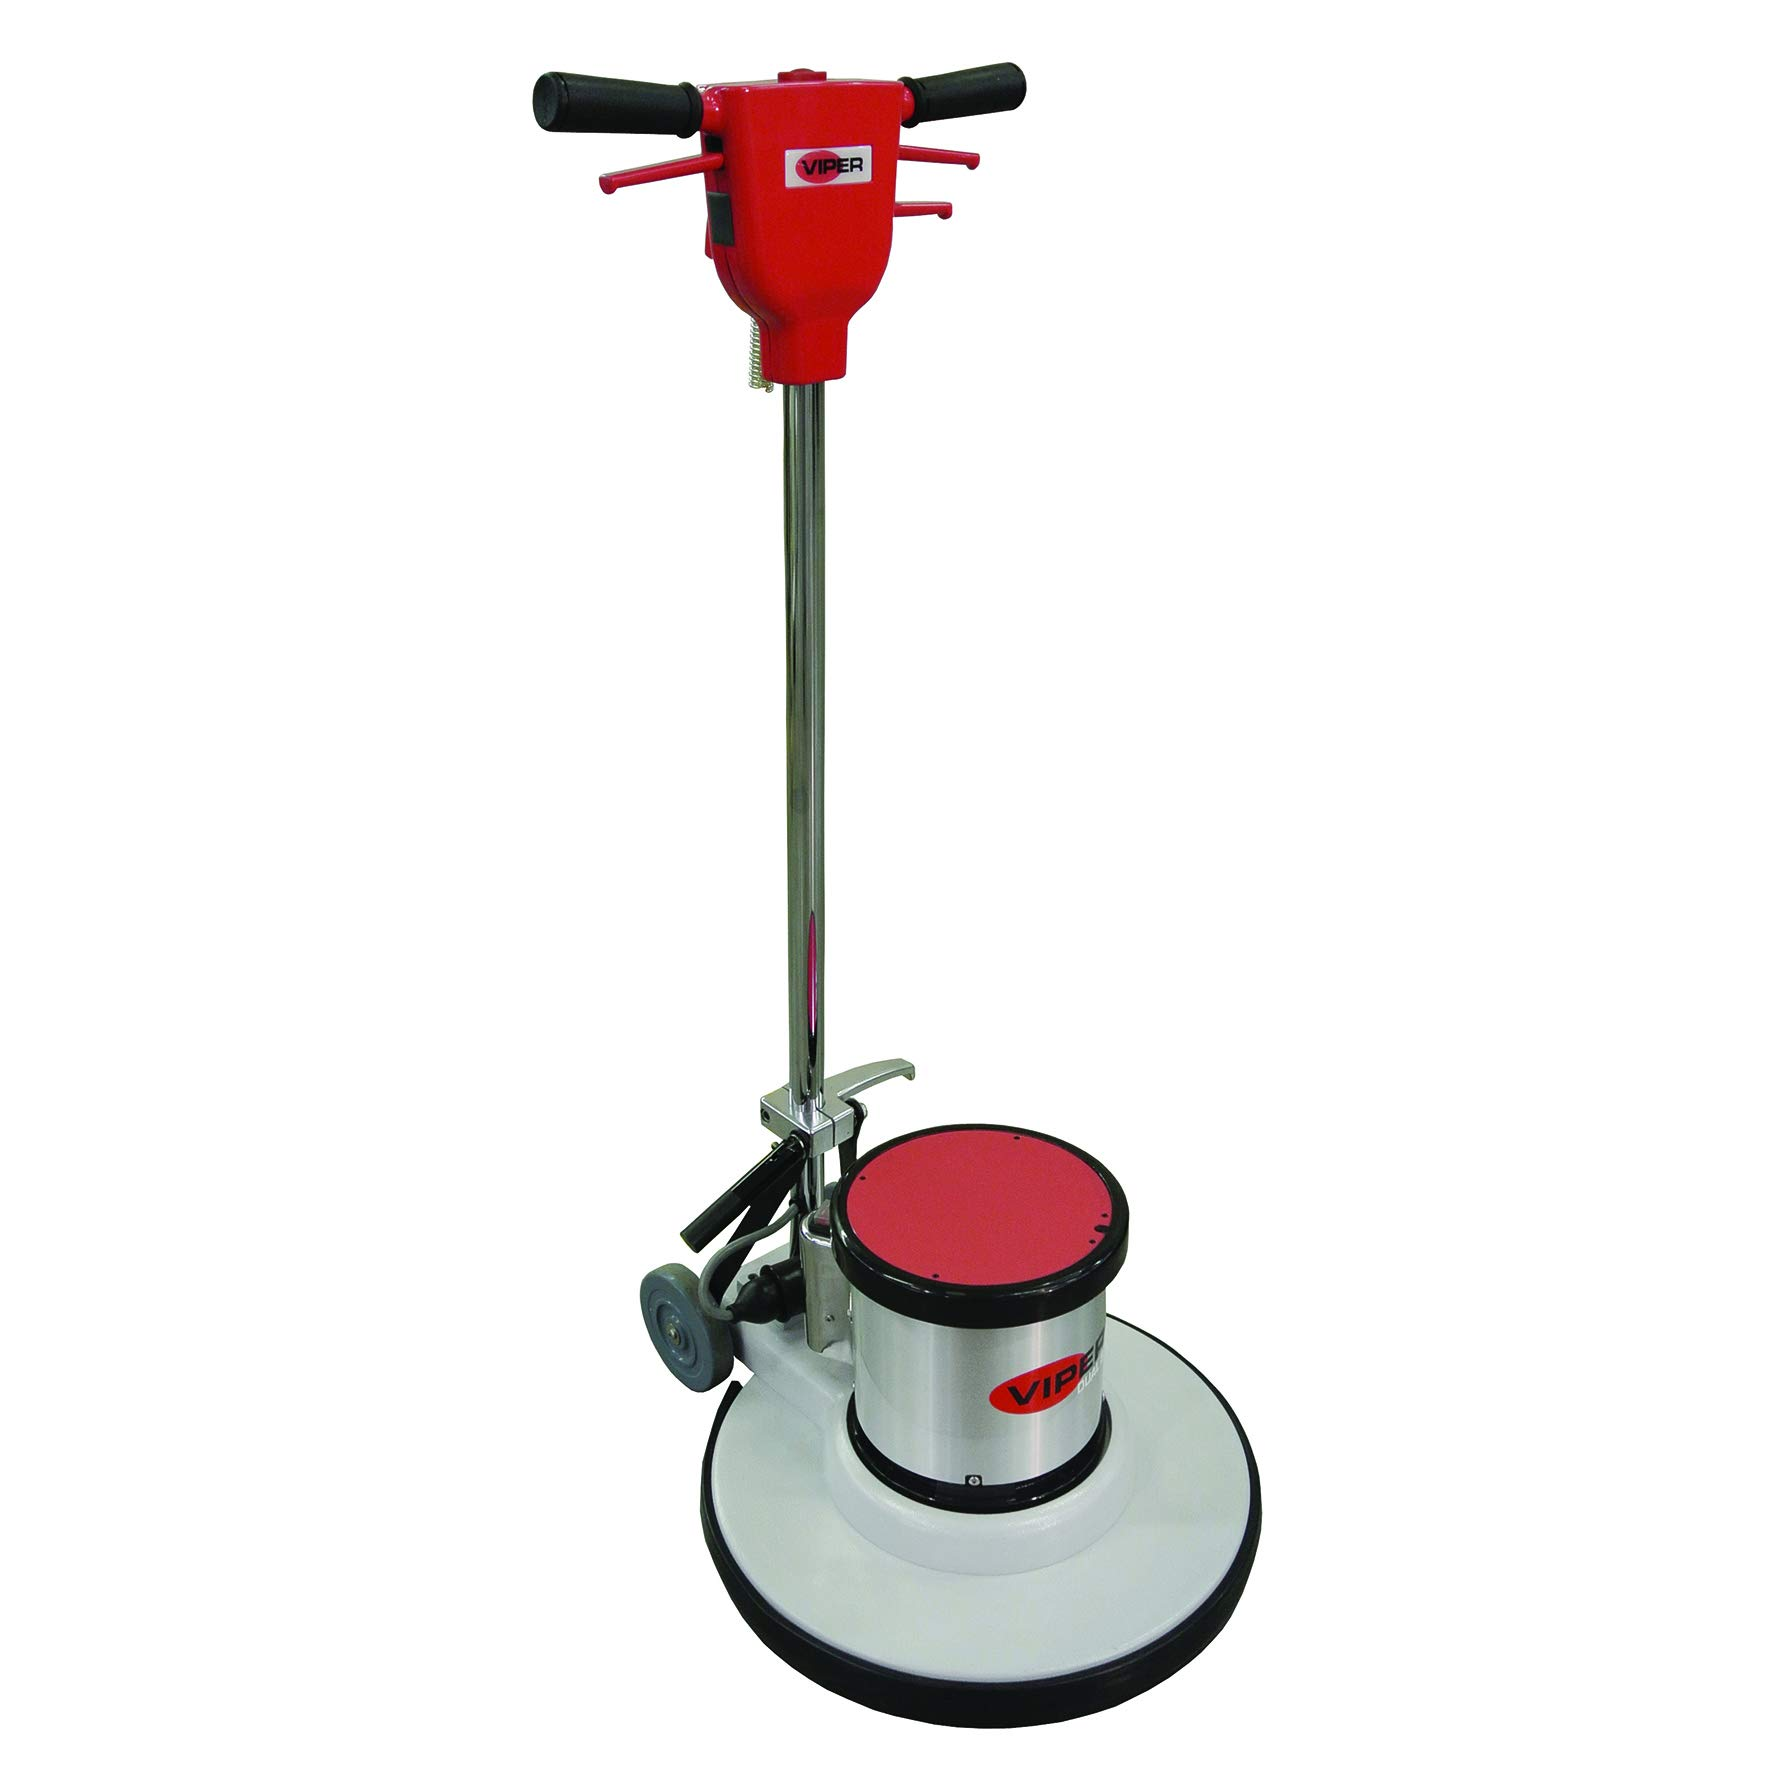 Viper Cleaning Equipment VN2015 Venom Series Low Speed Buffer, 20'' Deck Size, 175 RPM, 50' Power Cable, 110V, 1.5 hp, 19'' Pad Driver by Viper Cleaning Equipment